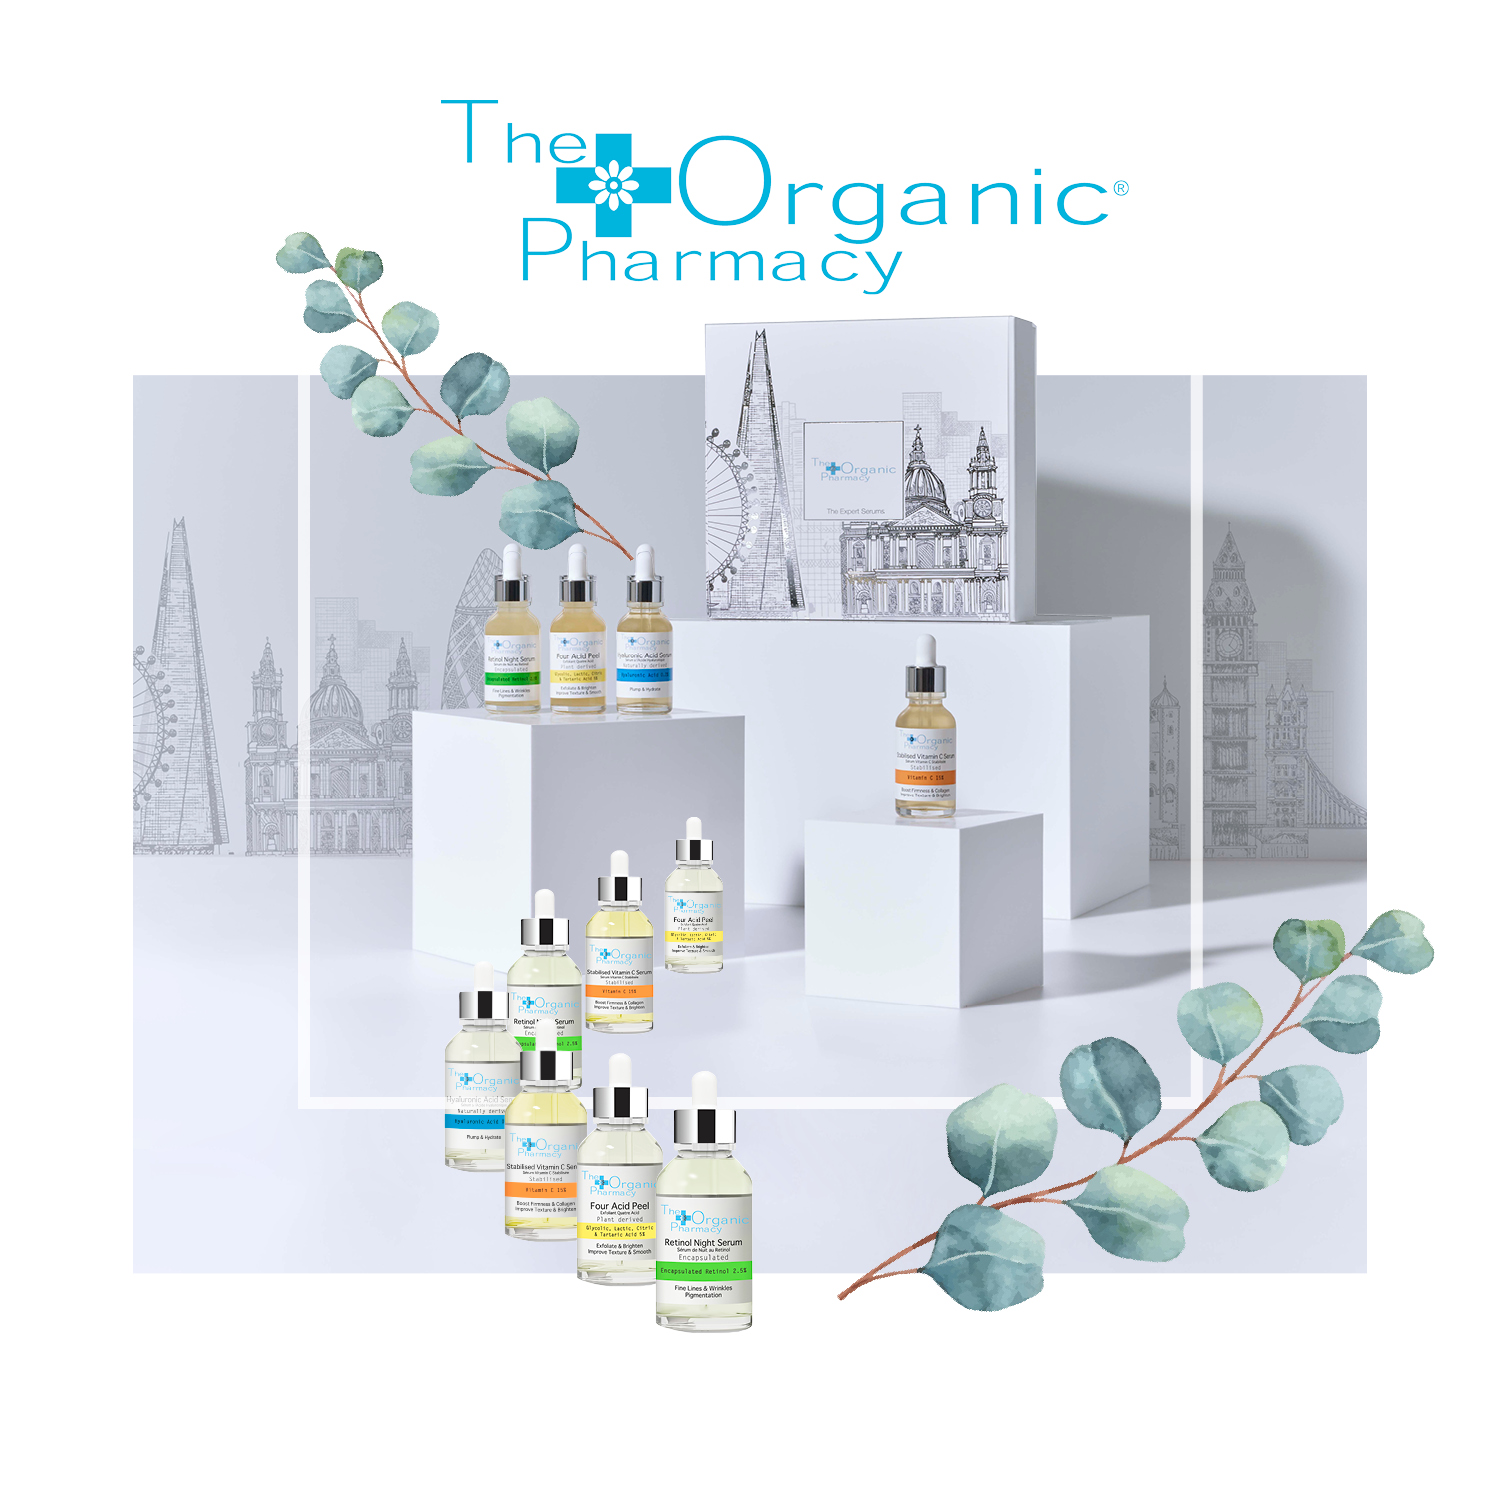 Adventsverlosung: The Organic Pharmacy